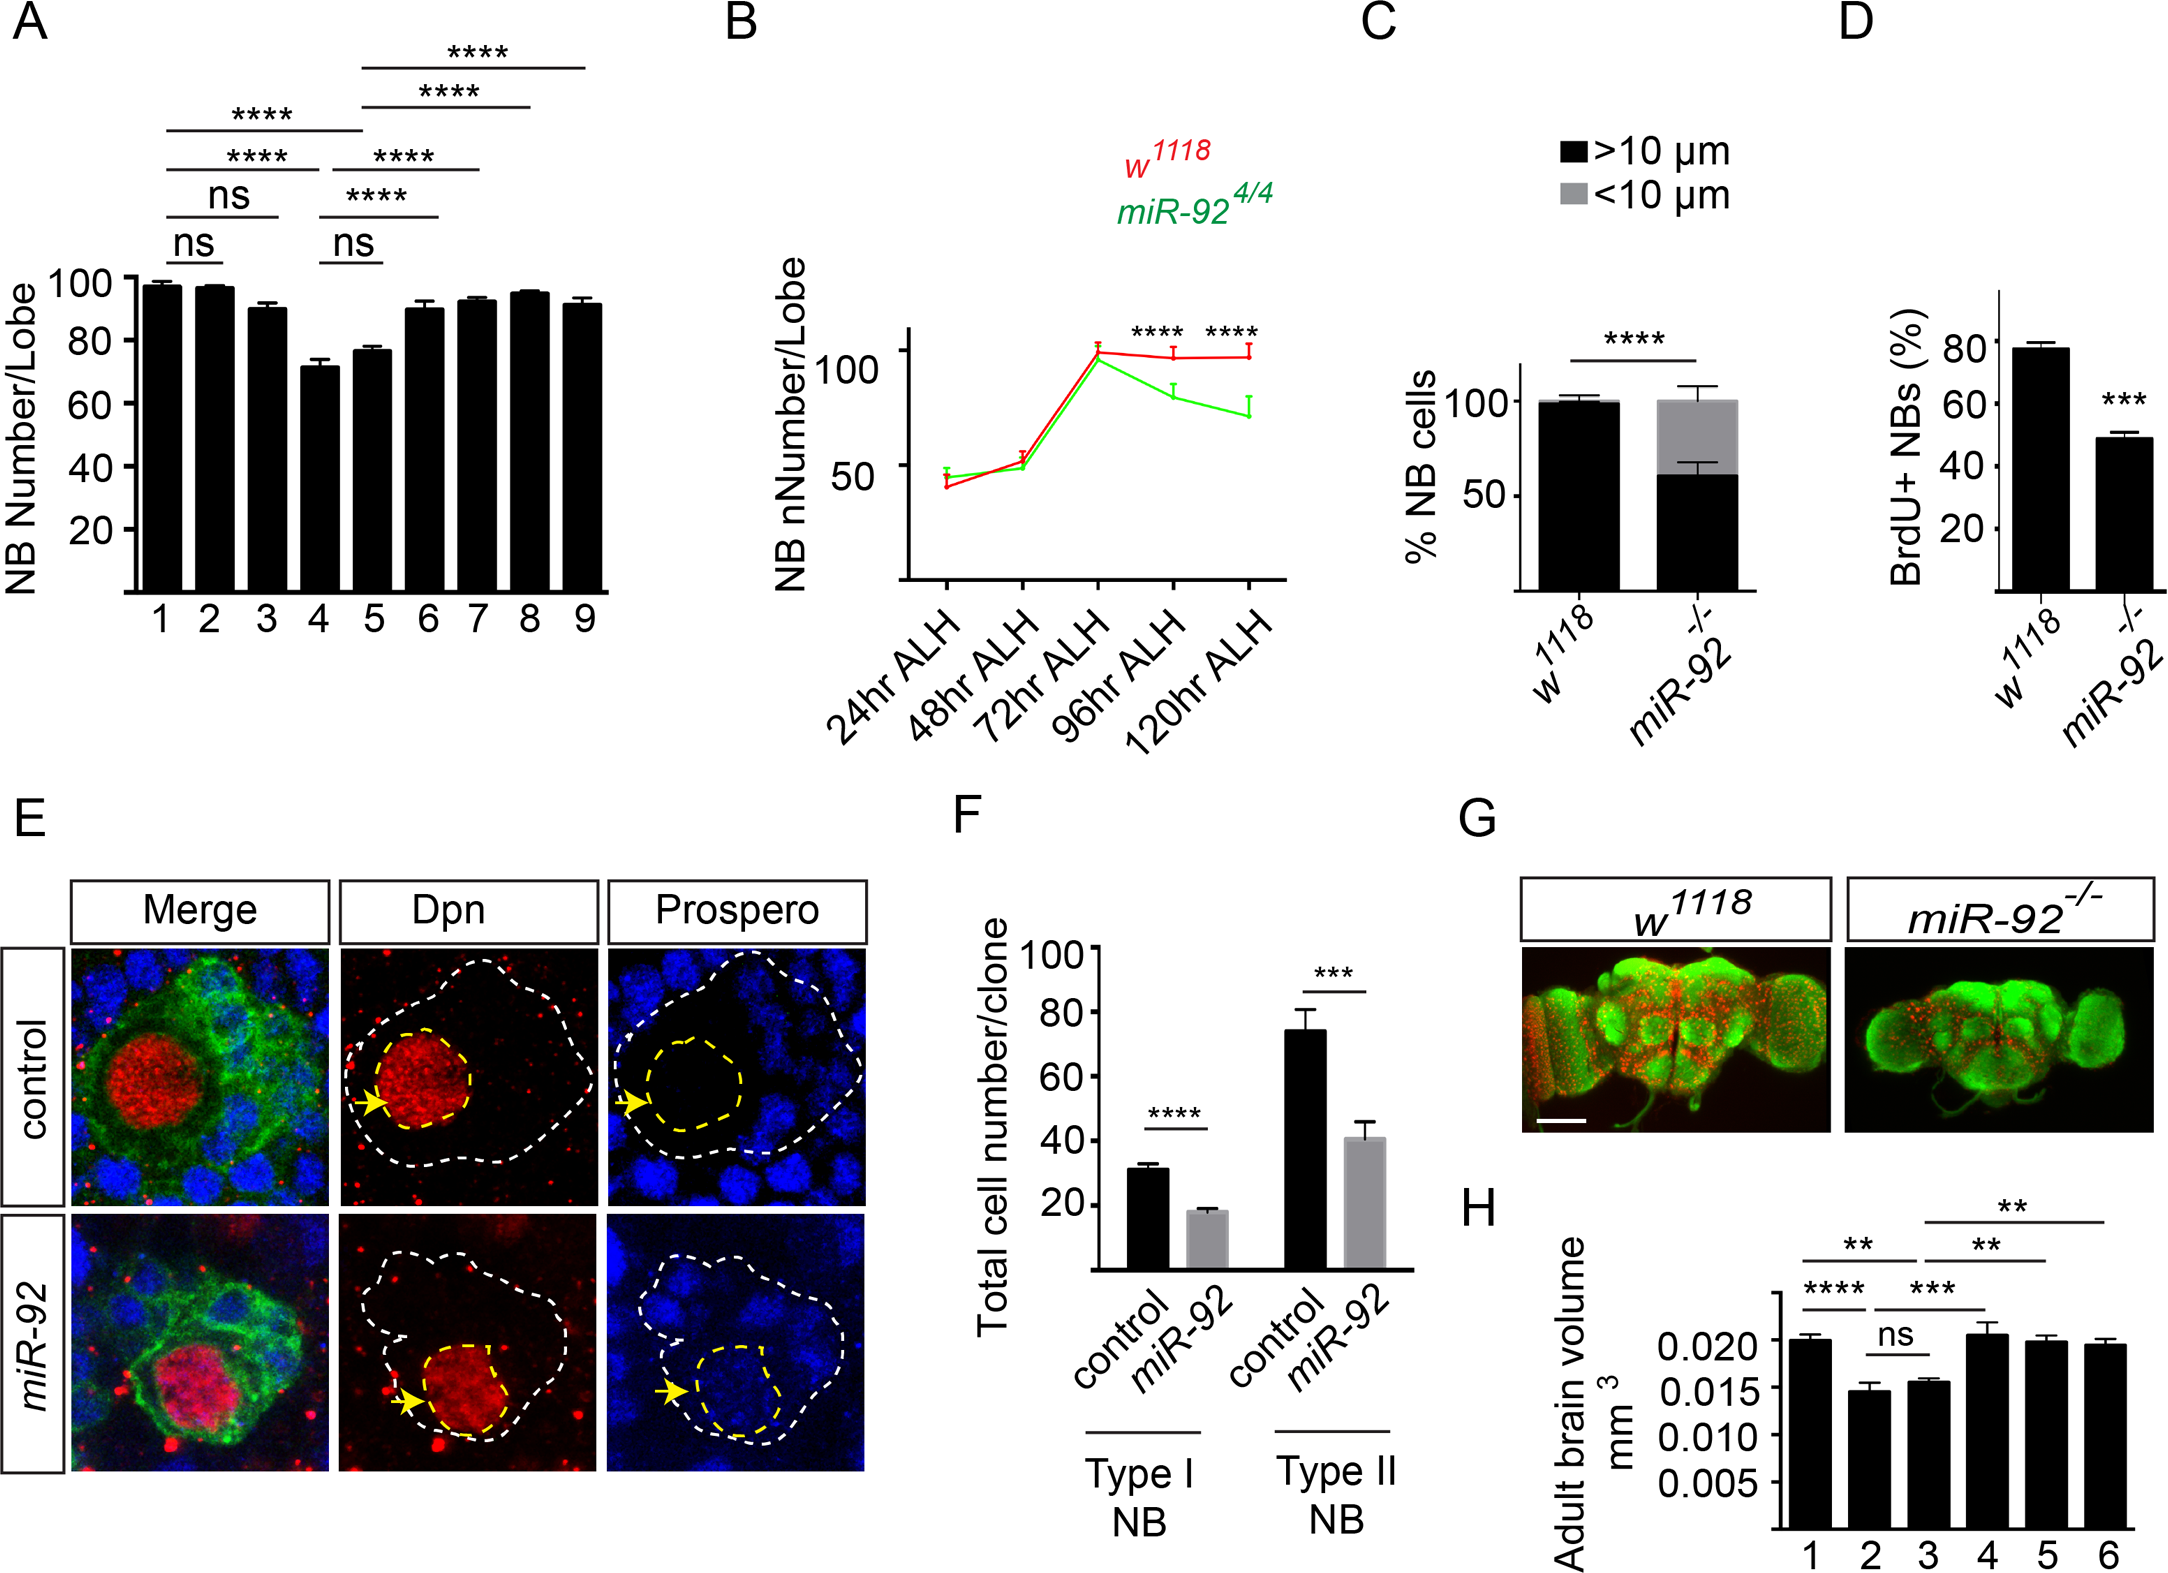 miR-92a and miR-92b regulate neuroblast self-renewal by inhibiting premature differentiation.